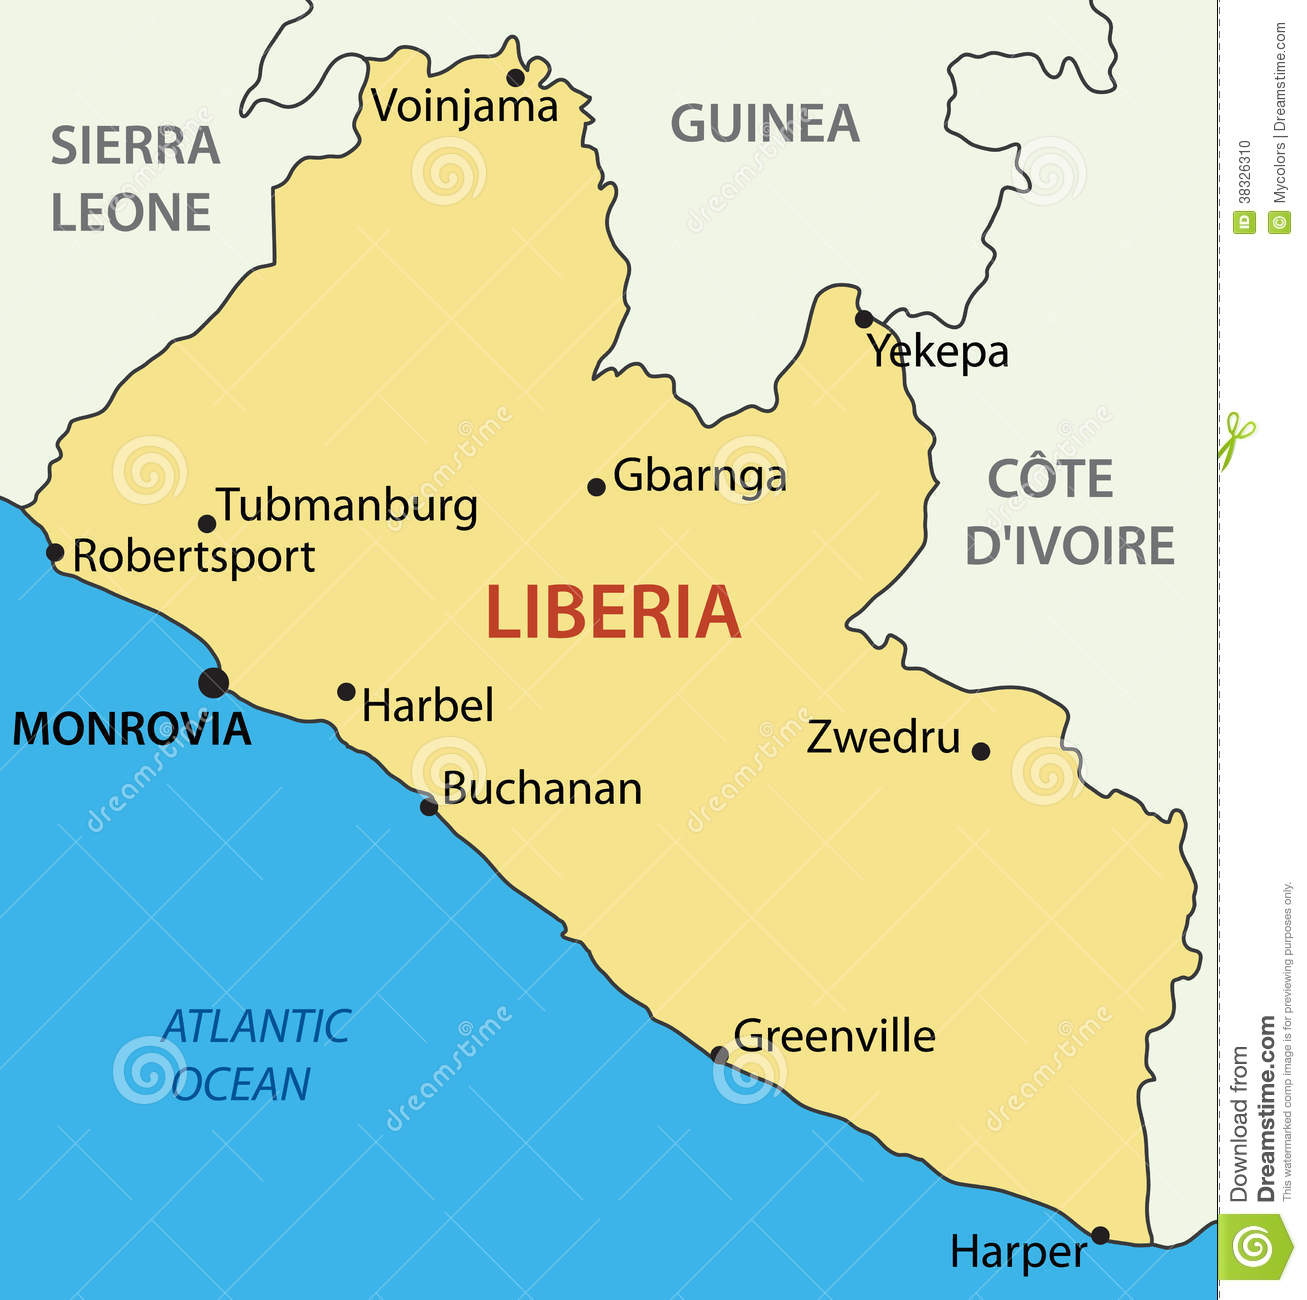 Liberia On Africa Map.Republic Of Liberia Vector Map Stock Vector Illustration Of